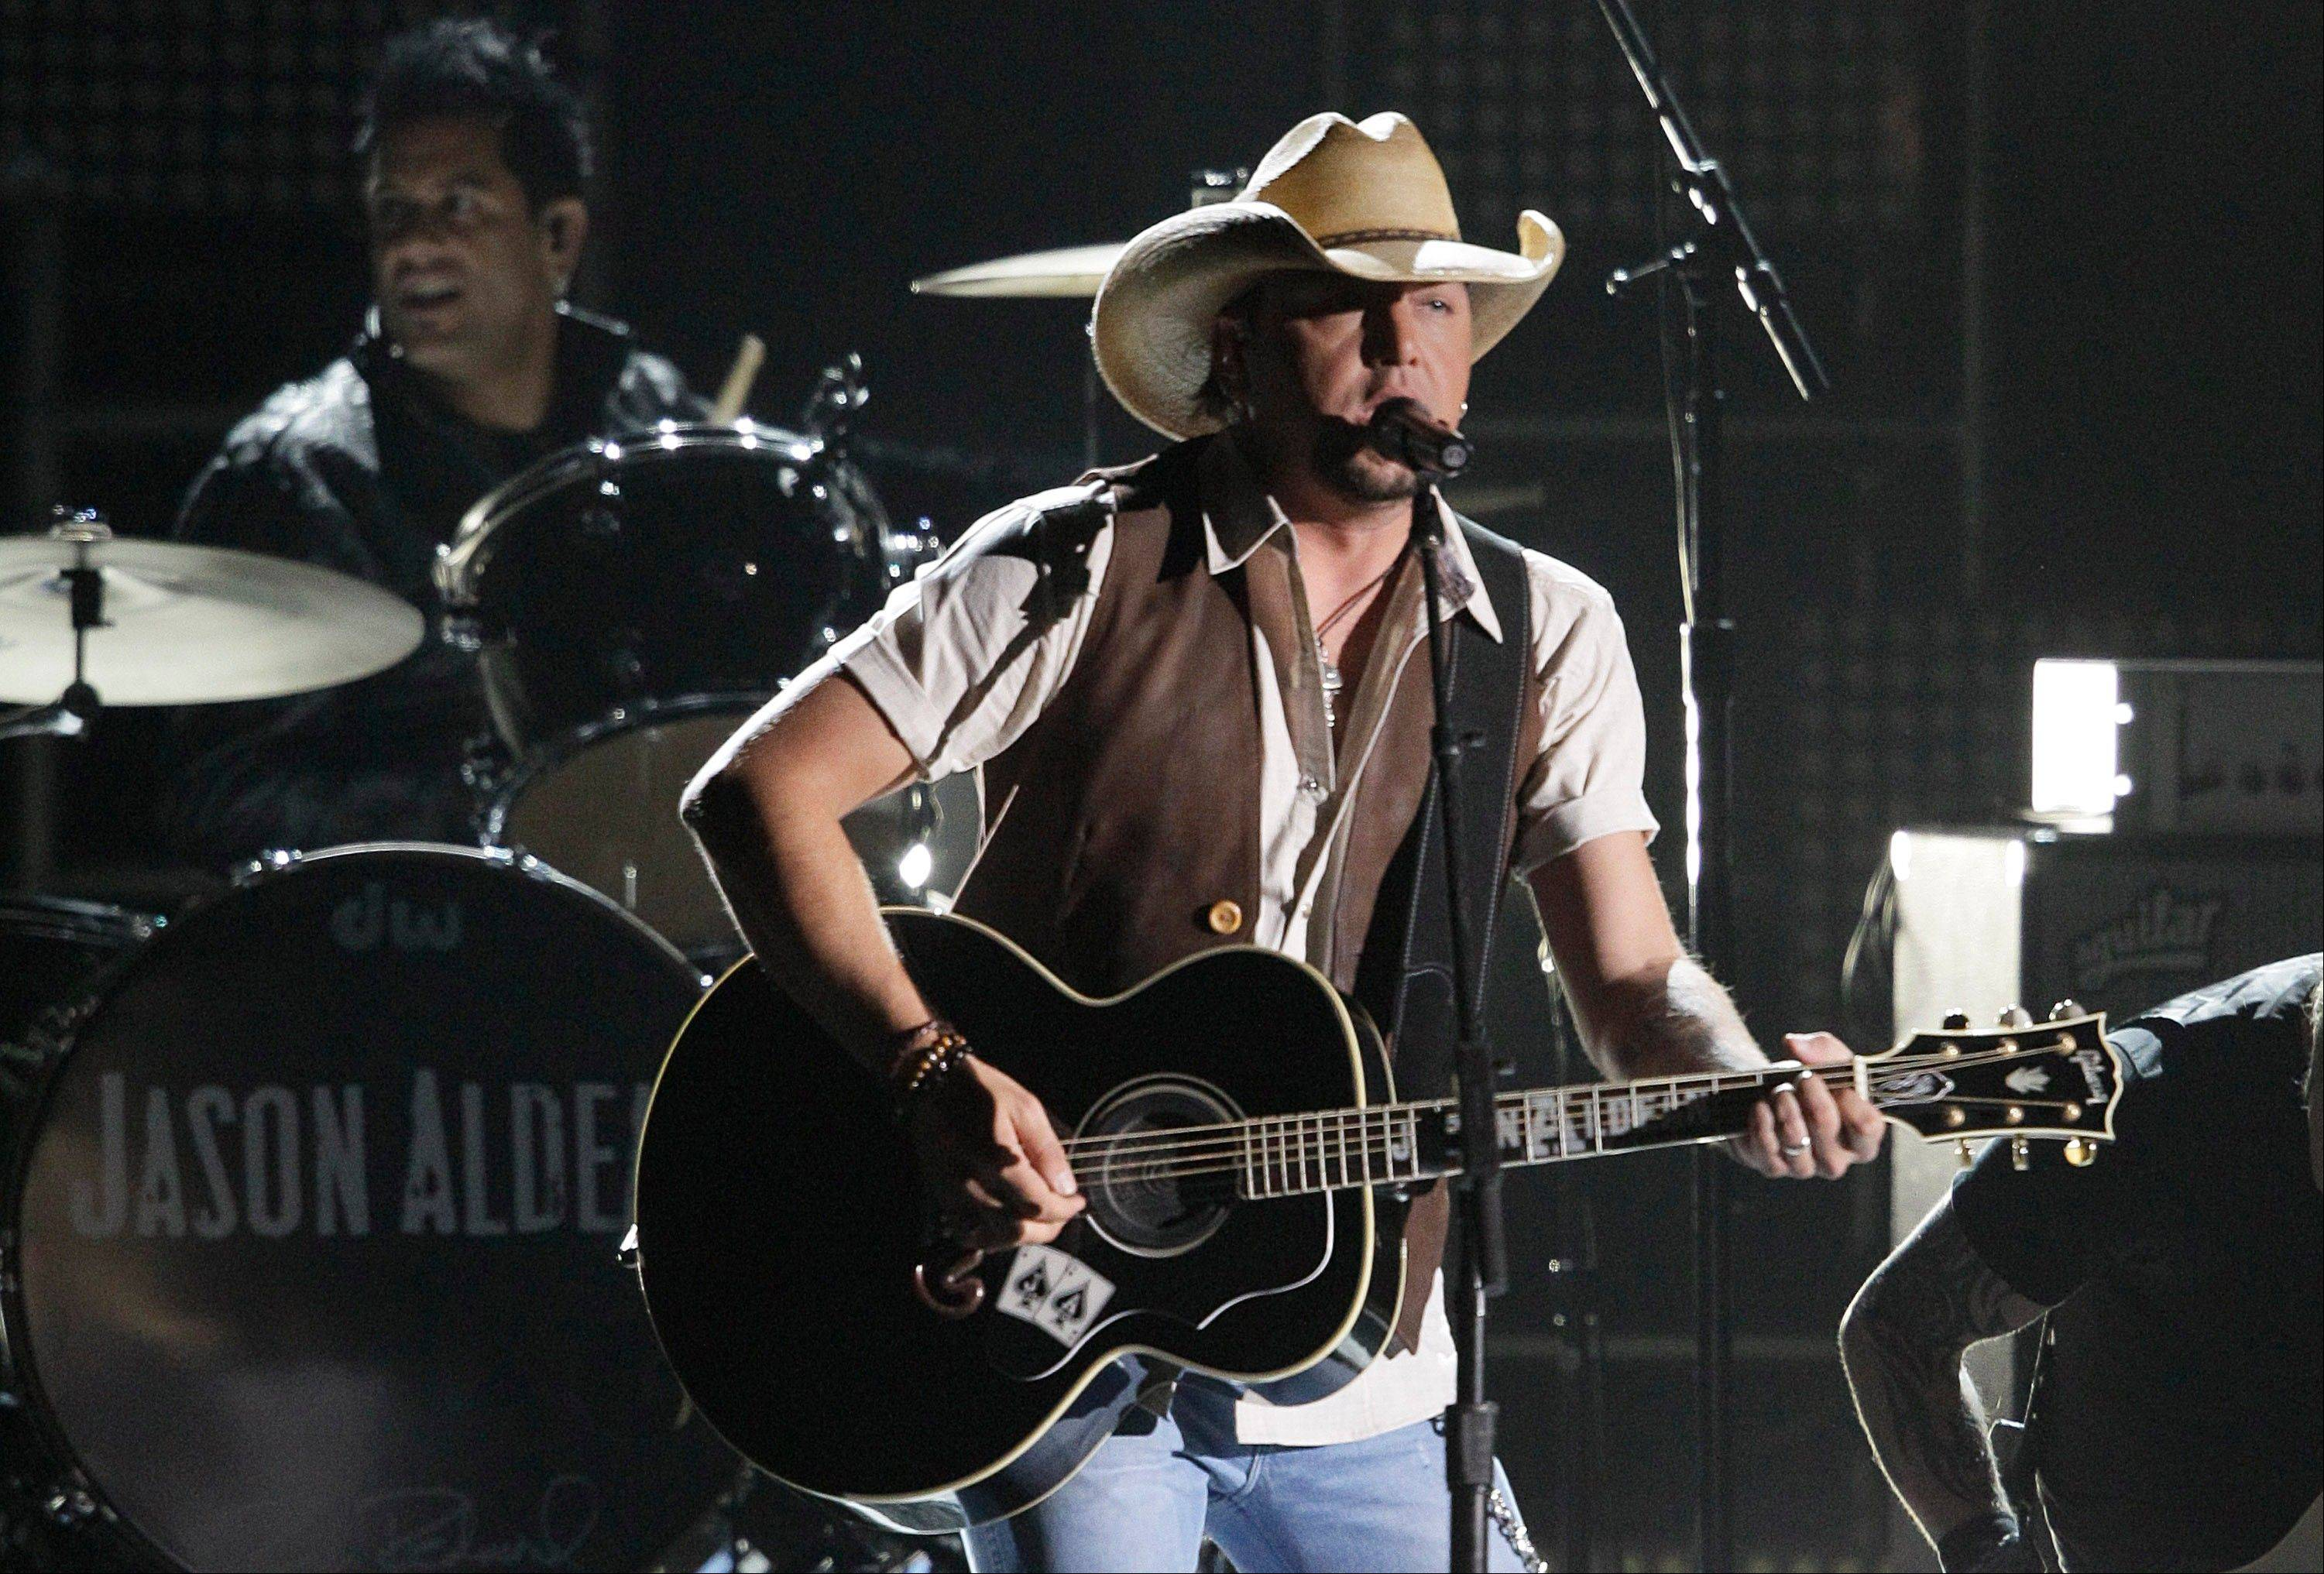 Jason Aldean performs at the 46th Annual Country Music Awards at the Bridgestone Arena on Thursday, Nov. 1, 2012, in Nashville, Tenn.